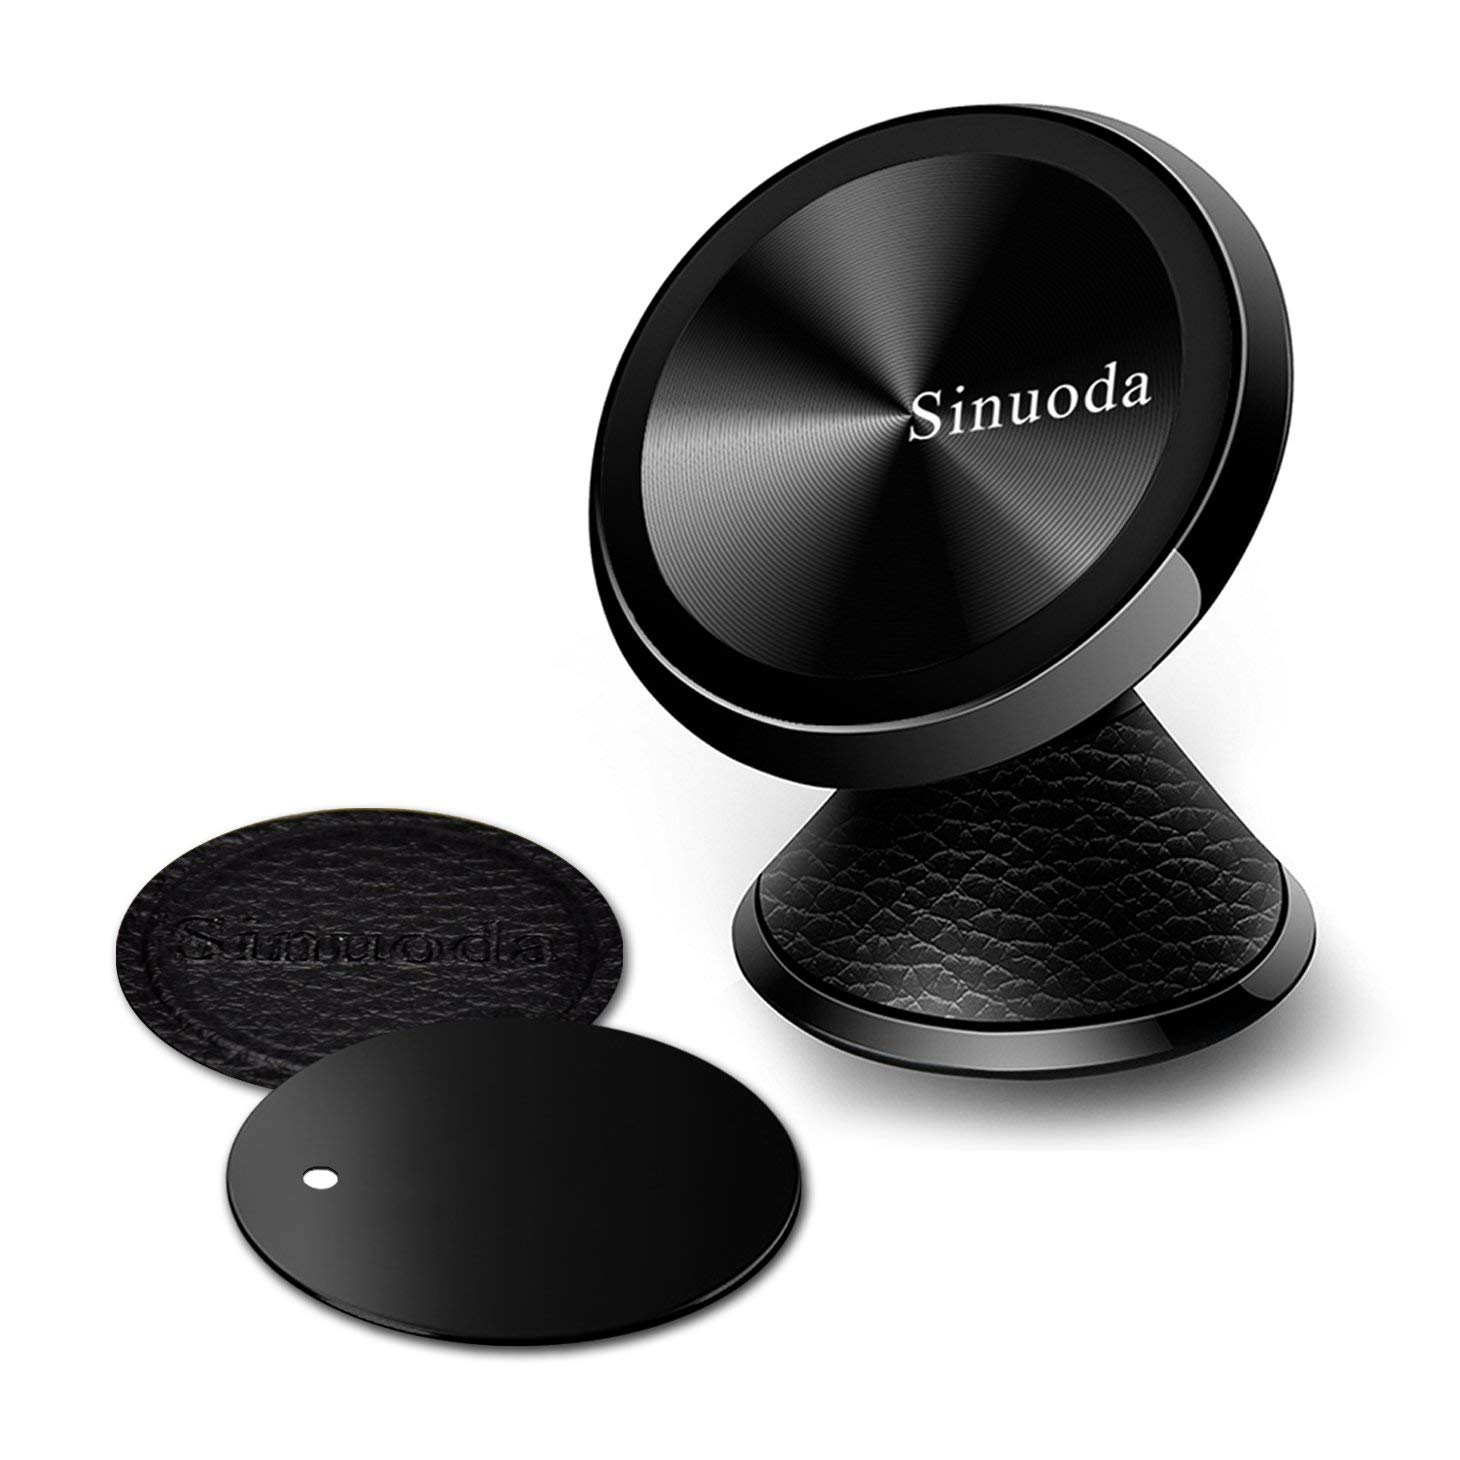 Universal Magnetic Phone Car Mount- Coupon Code 3JEKBI3S – Final Price: $7.49 (was $14.99)